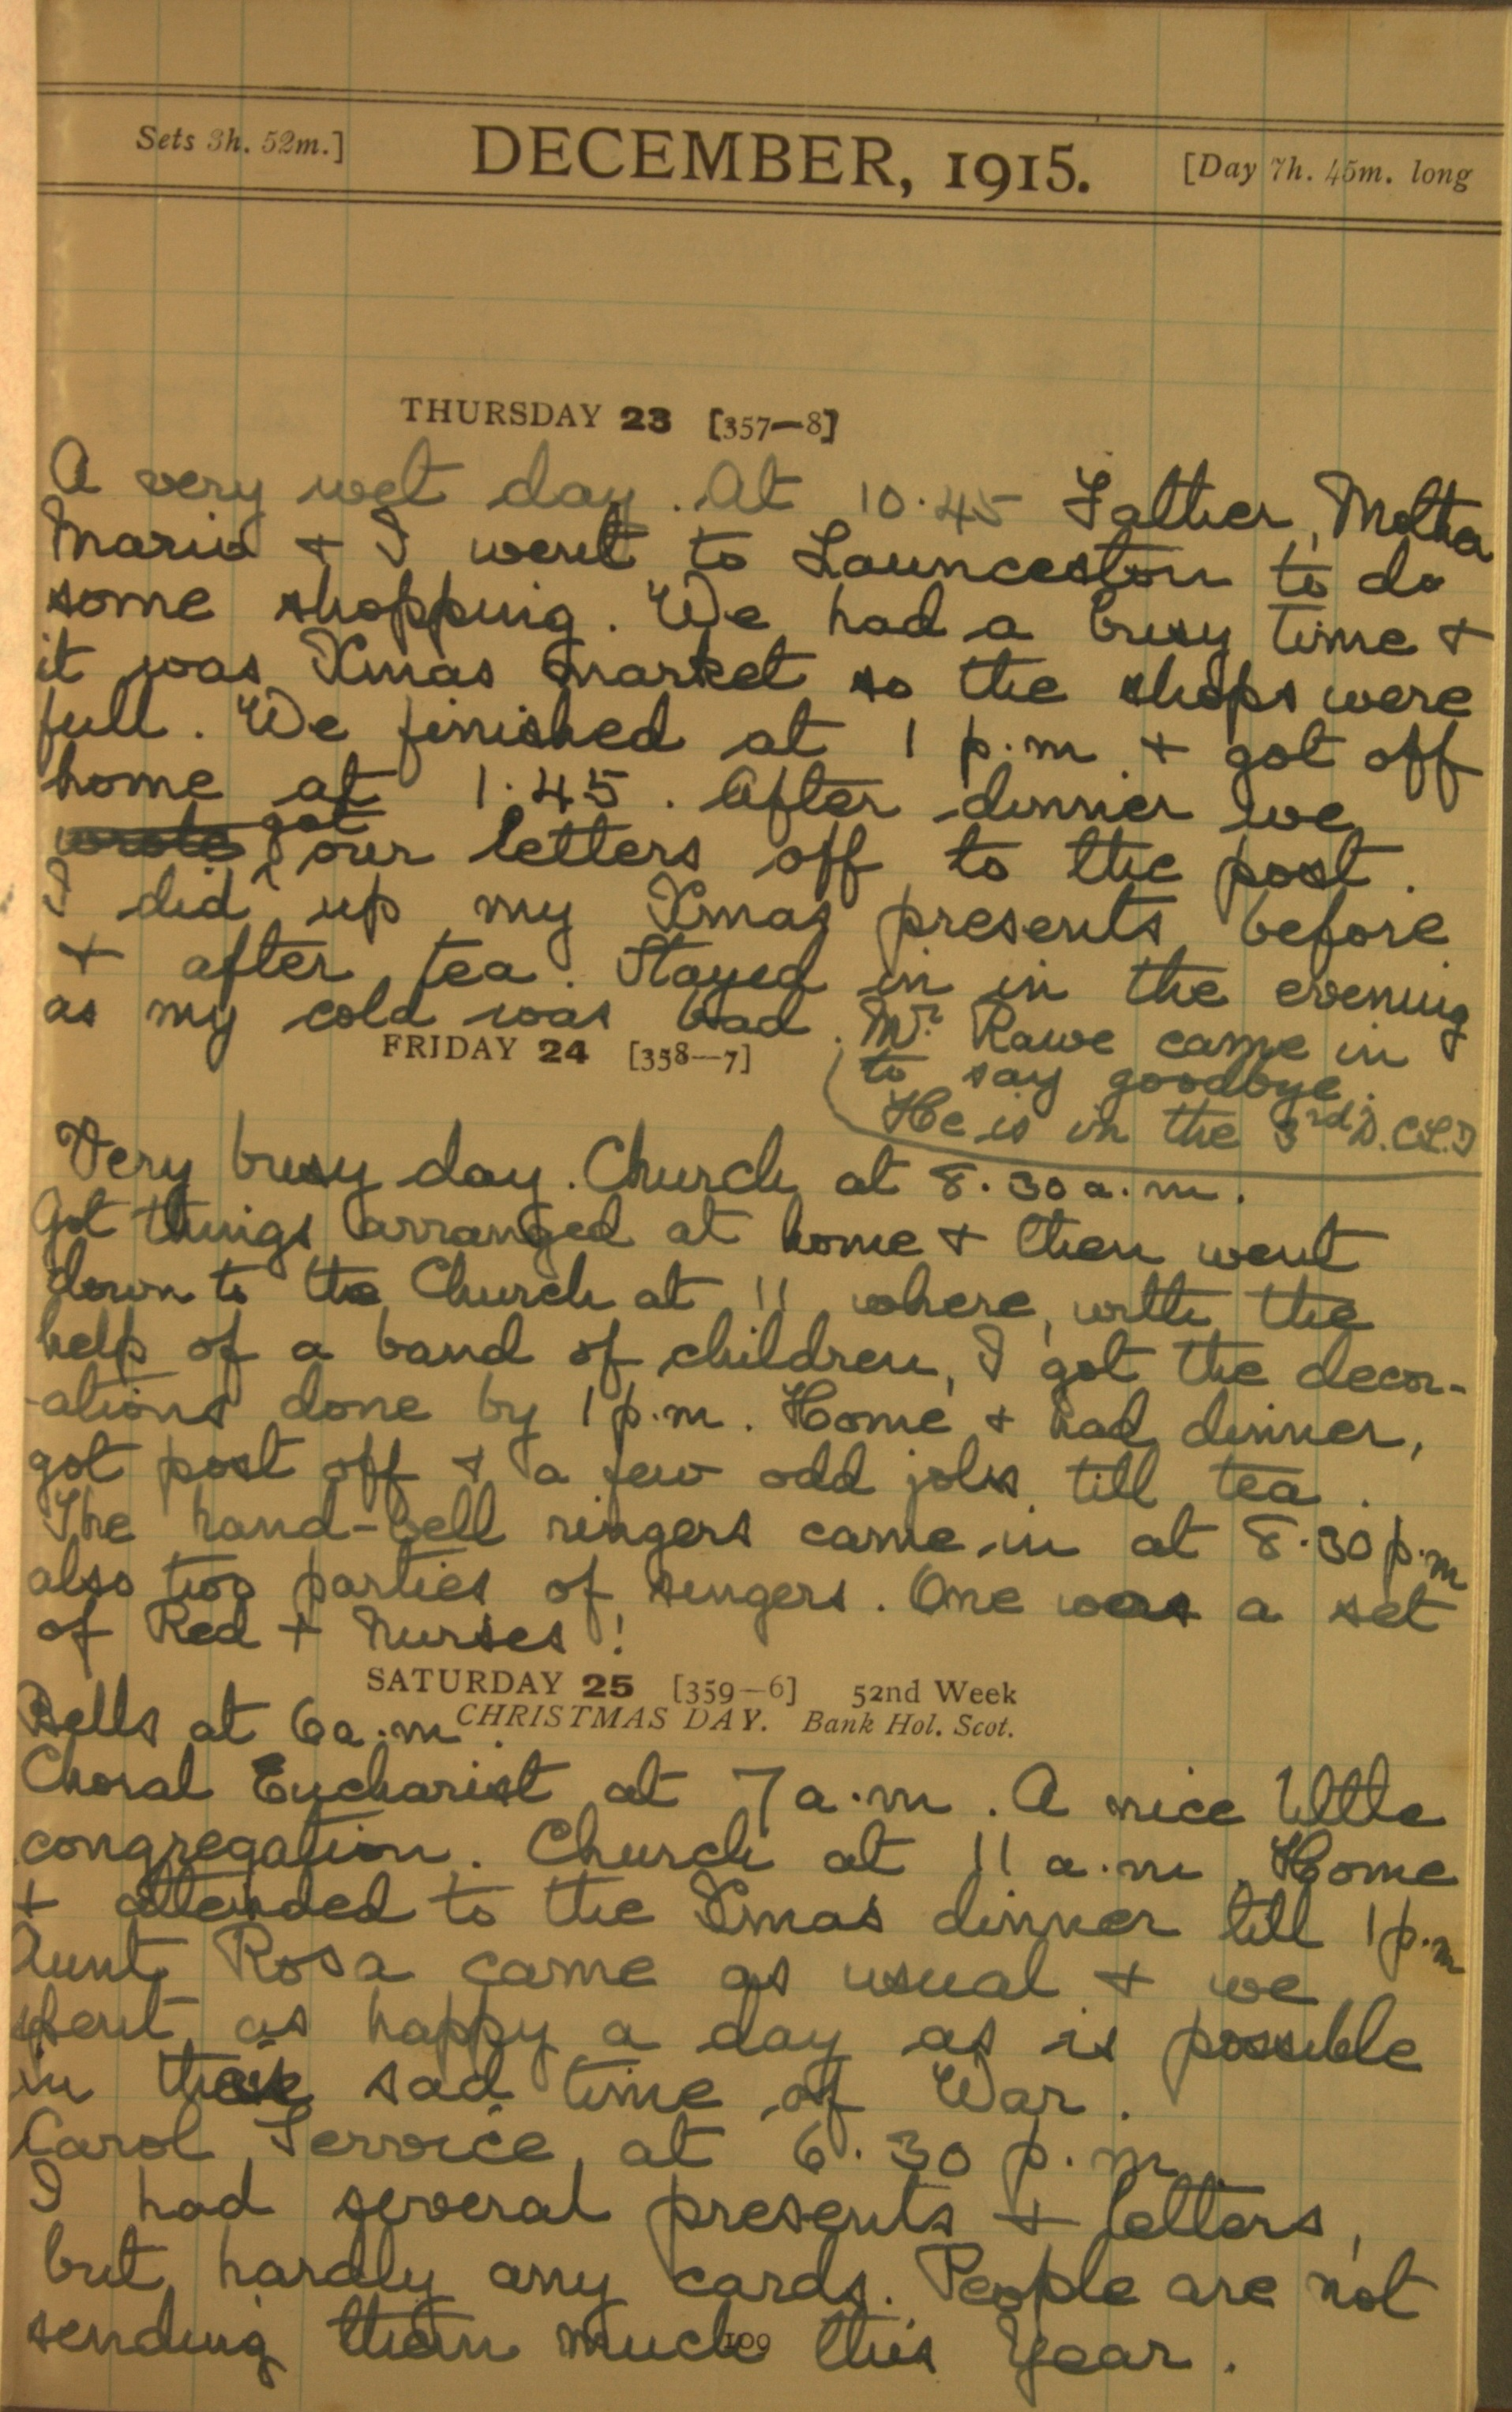 23 December 1915 entry reads : '… After dinner we got our letters off to the post. I did up my xmas presents before + after tea. …'